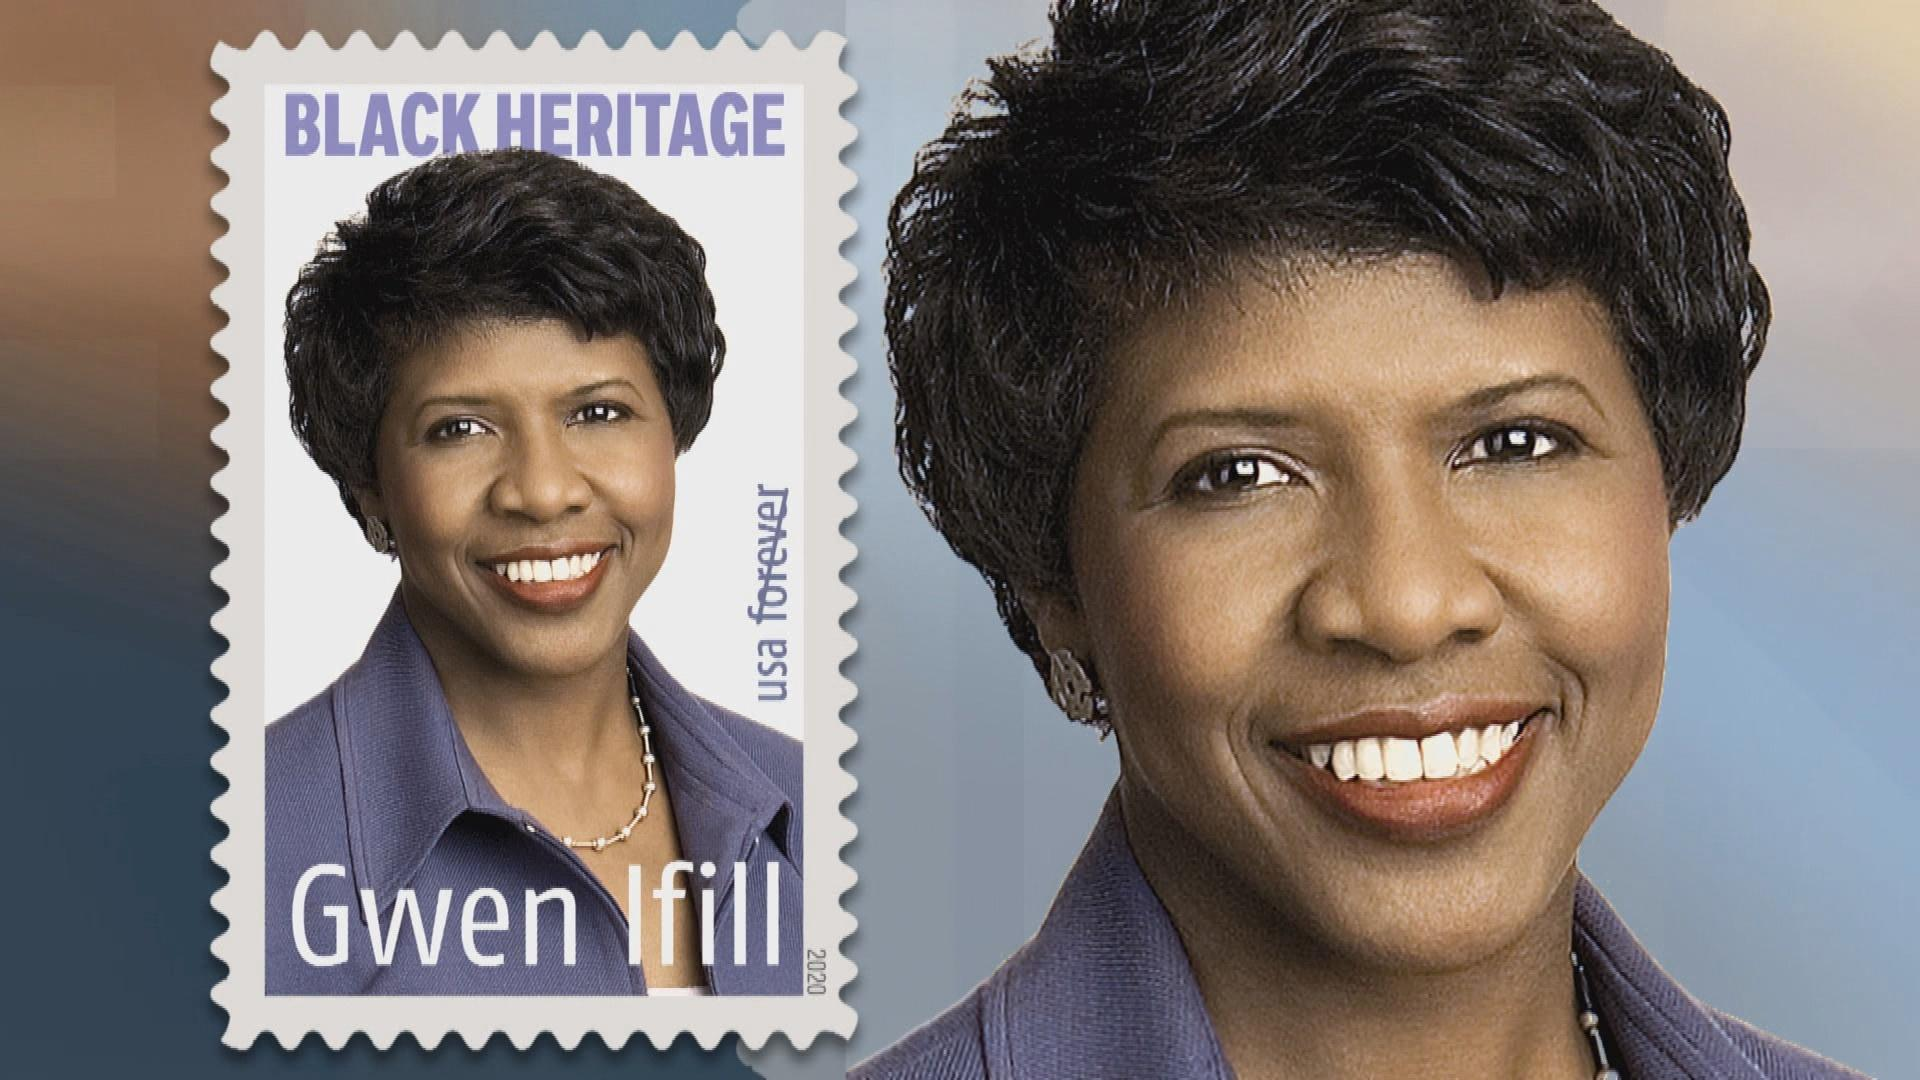 Late Journalist Gwen Ifill on New USPS Forever Stamp